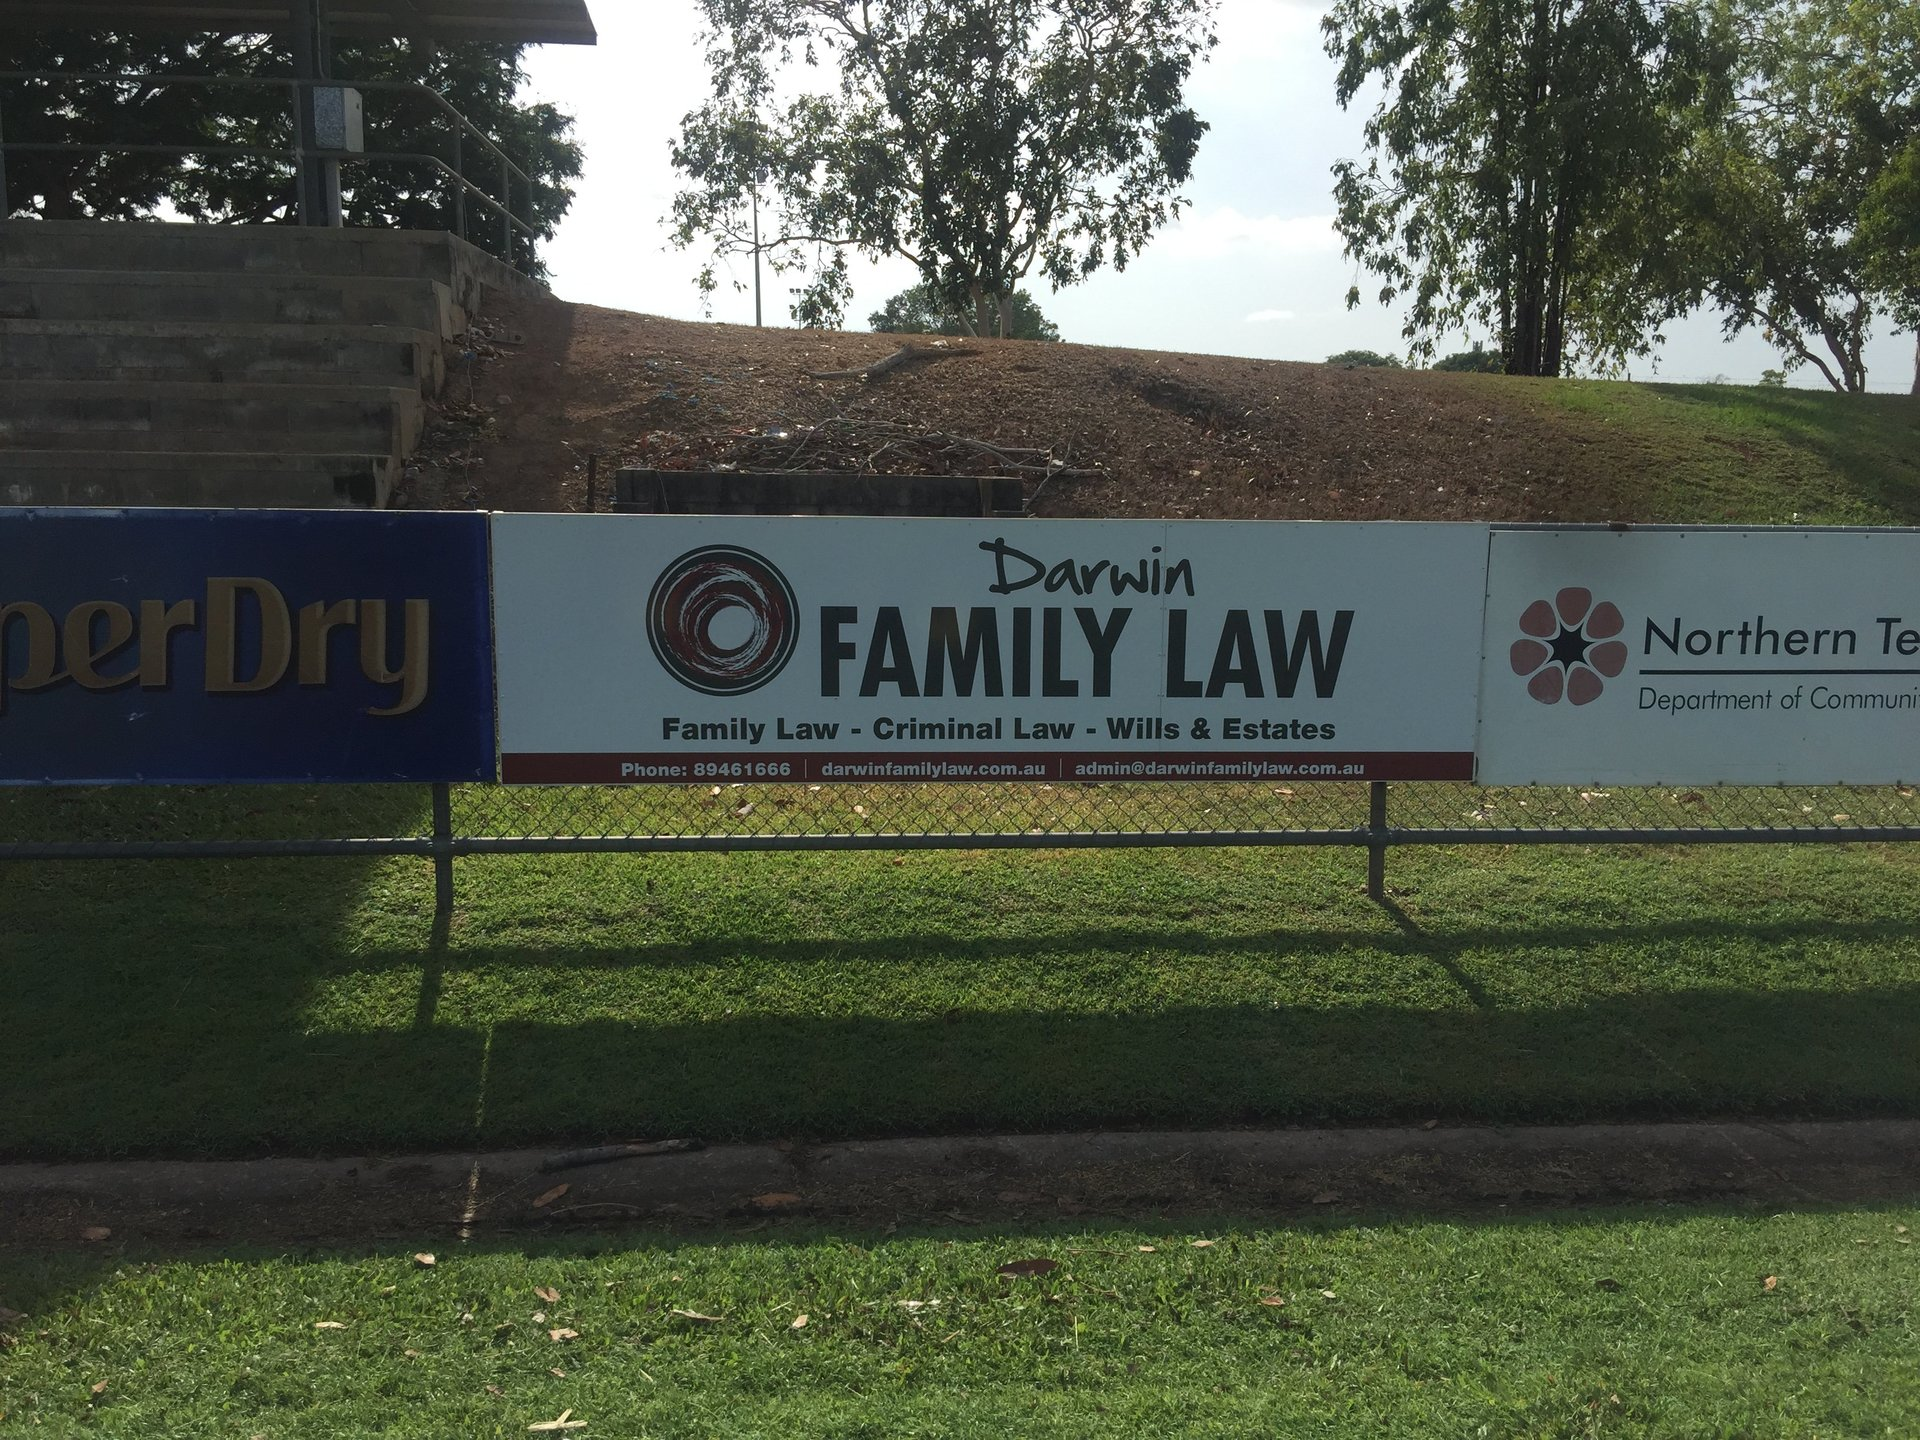 darwin family law banner